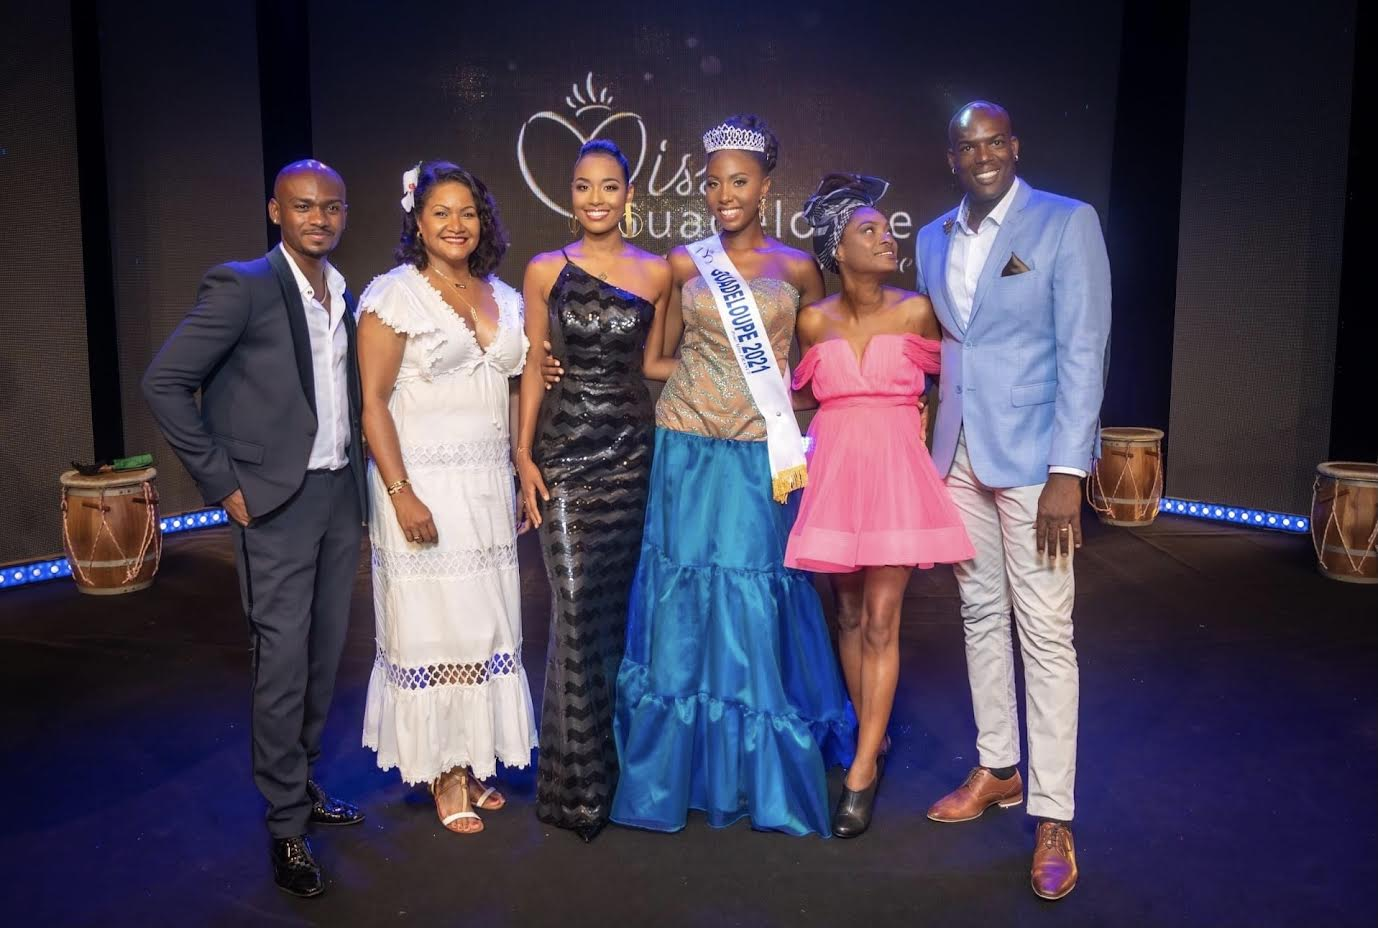 Lauranza jury Miss Guadeloupe 2021 pour Miss France